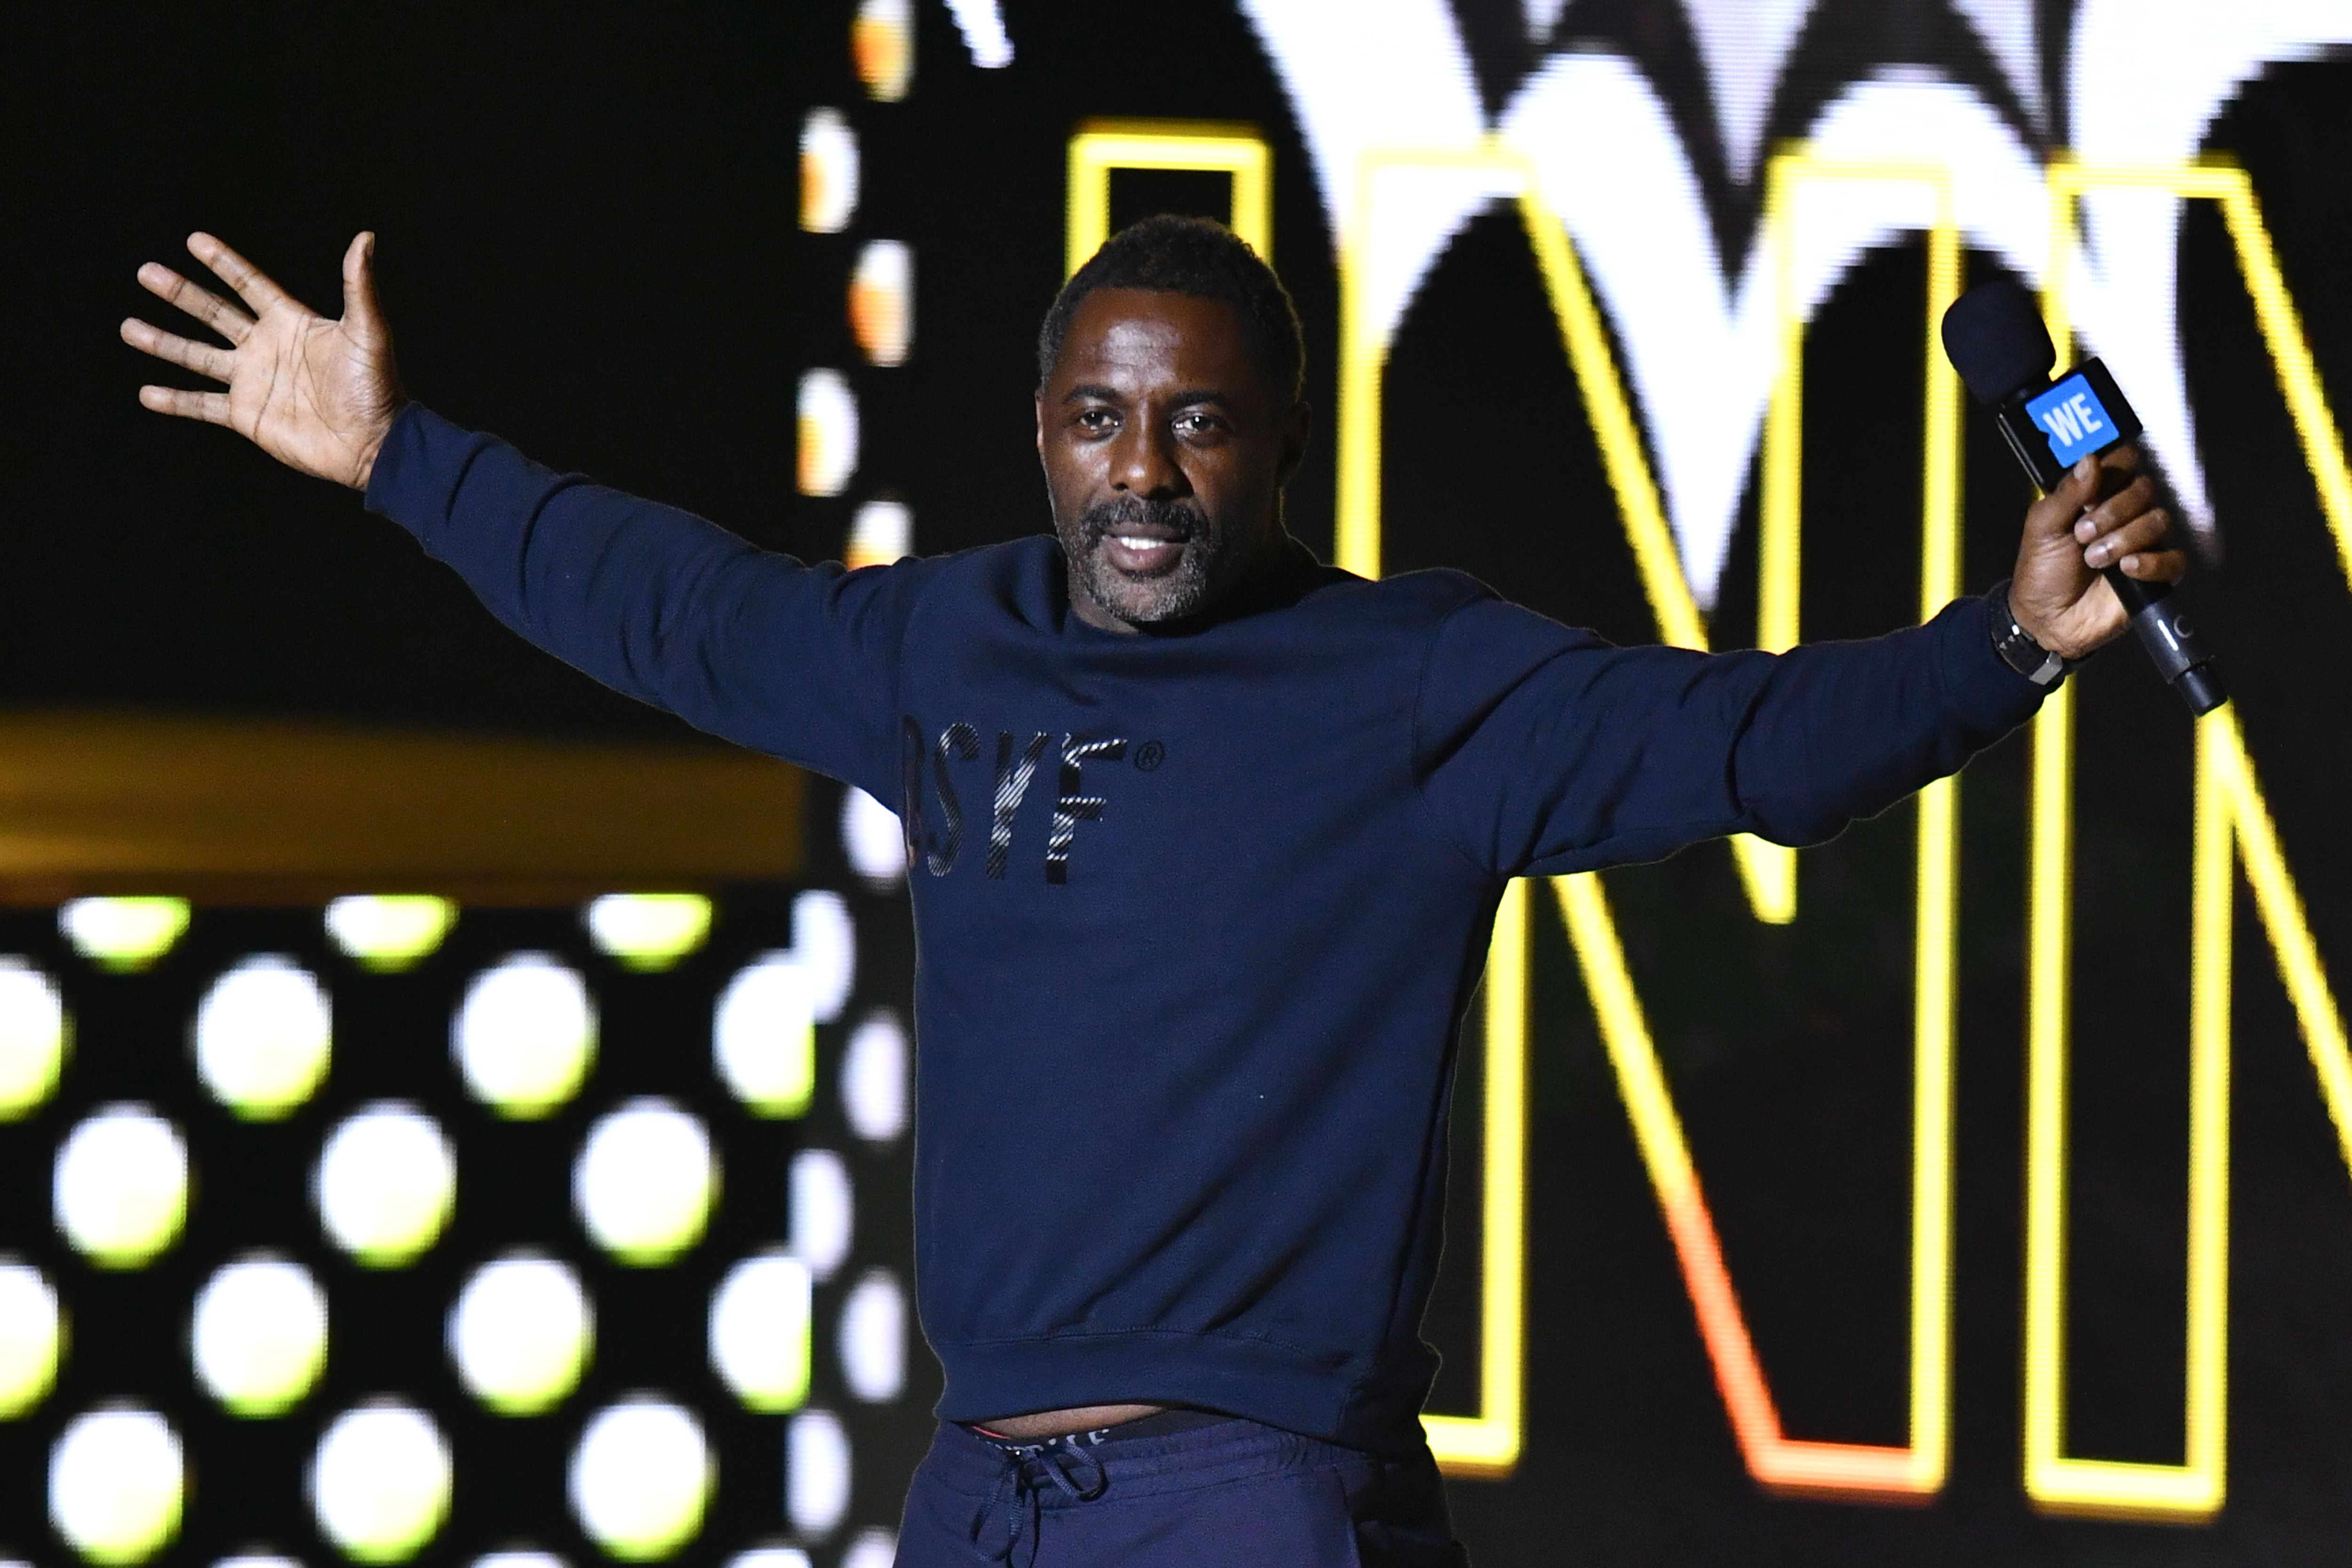 Idris Elba stretches his arms out while holding a microphone